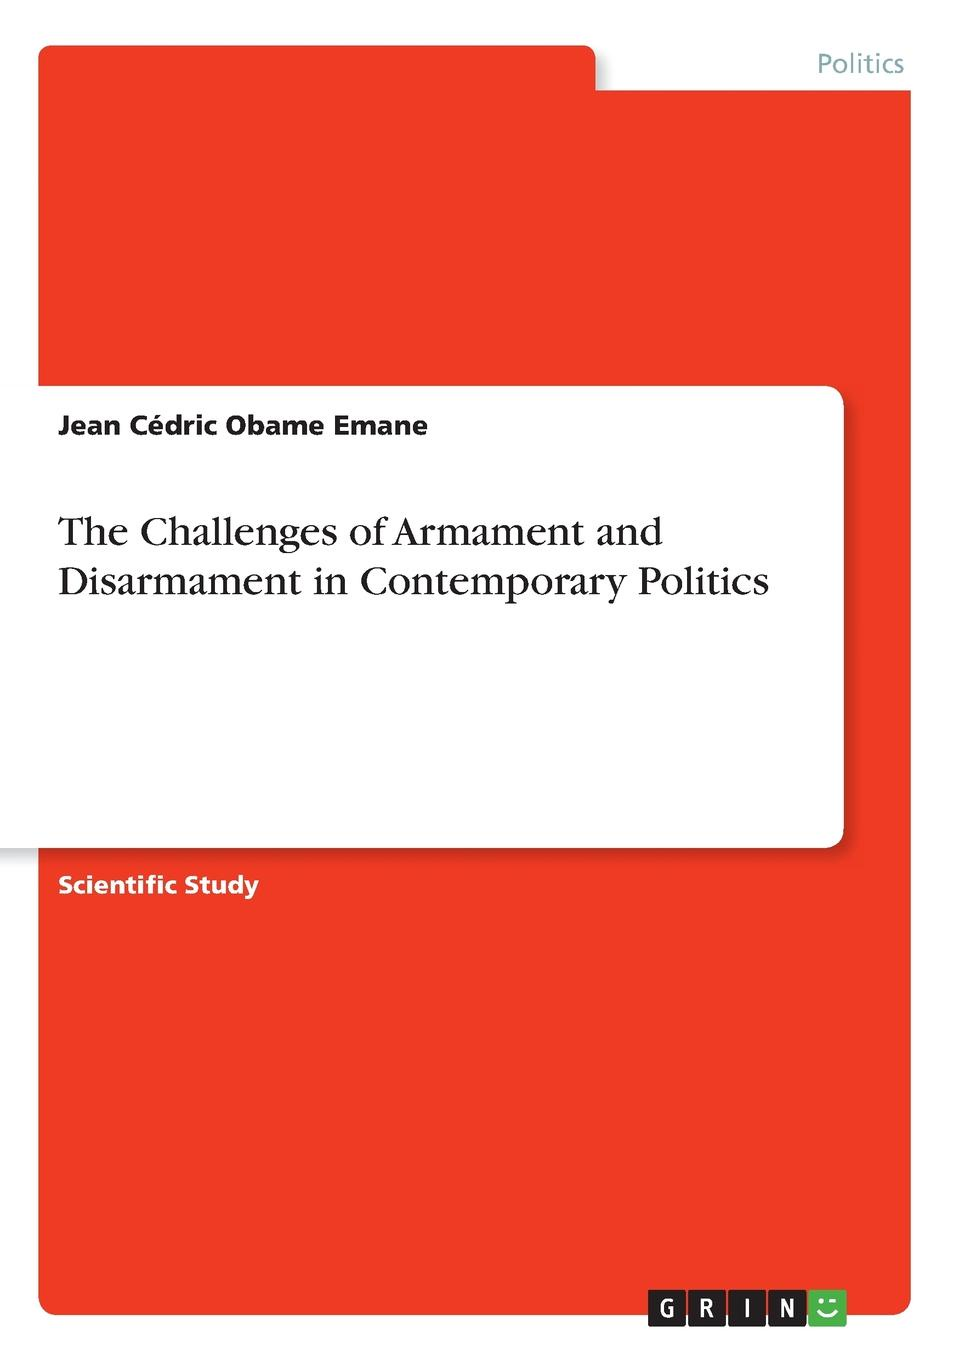 Jean Cédric Obame Emane The Challenges of Armament and Disarmament in Contemporary Politics denis stein marion preuß nina höhne economical implications of shutdowns of nuclear power in germany